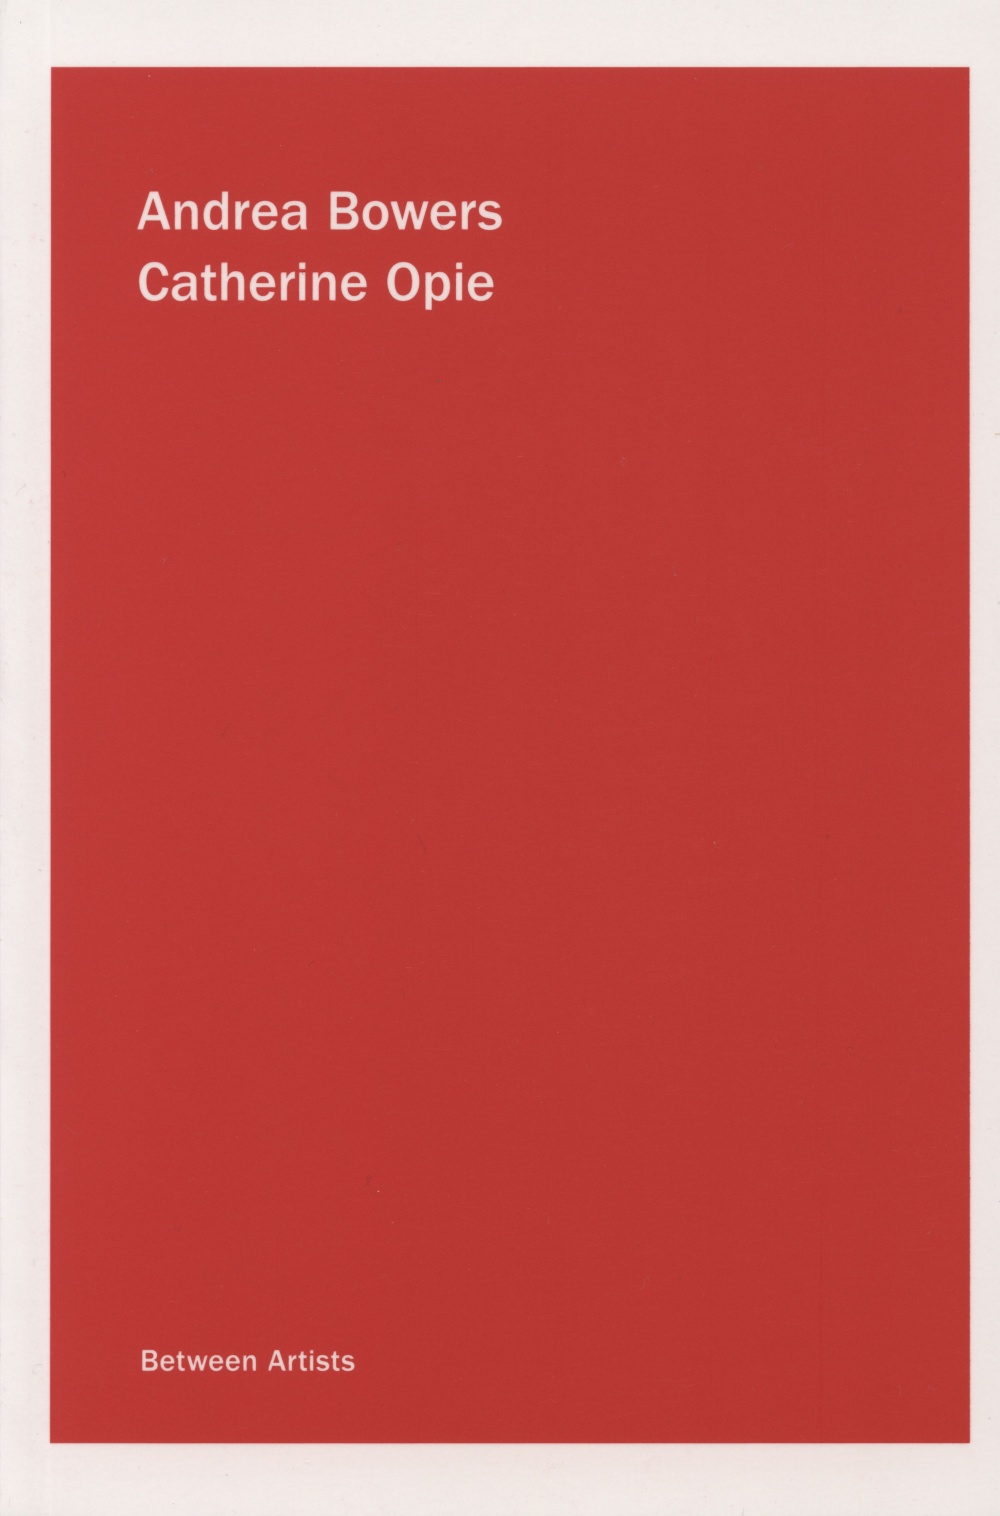 Andrea Bowers / Catherine Opie